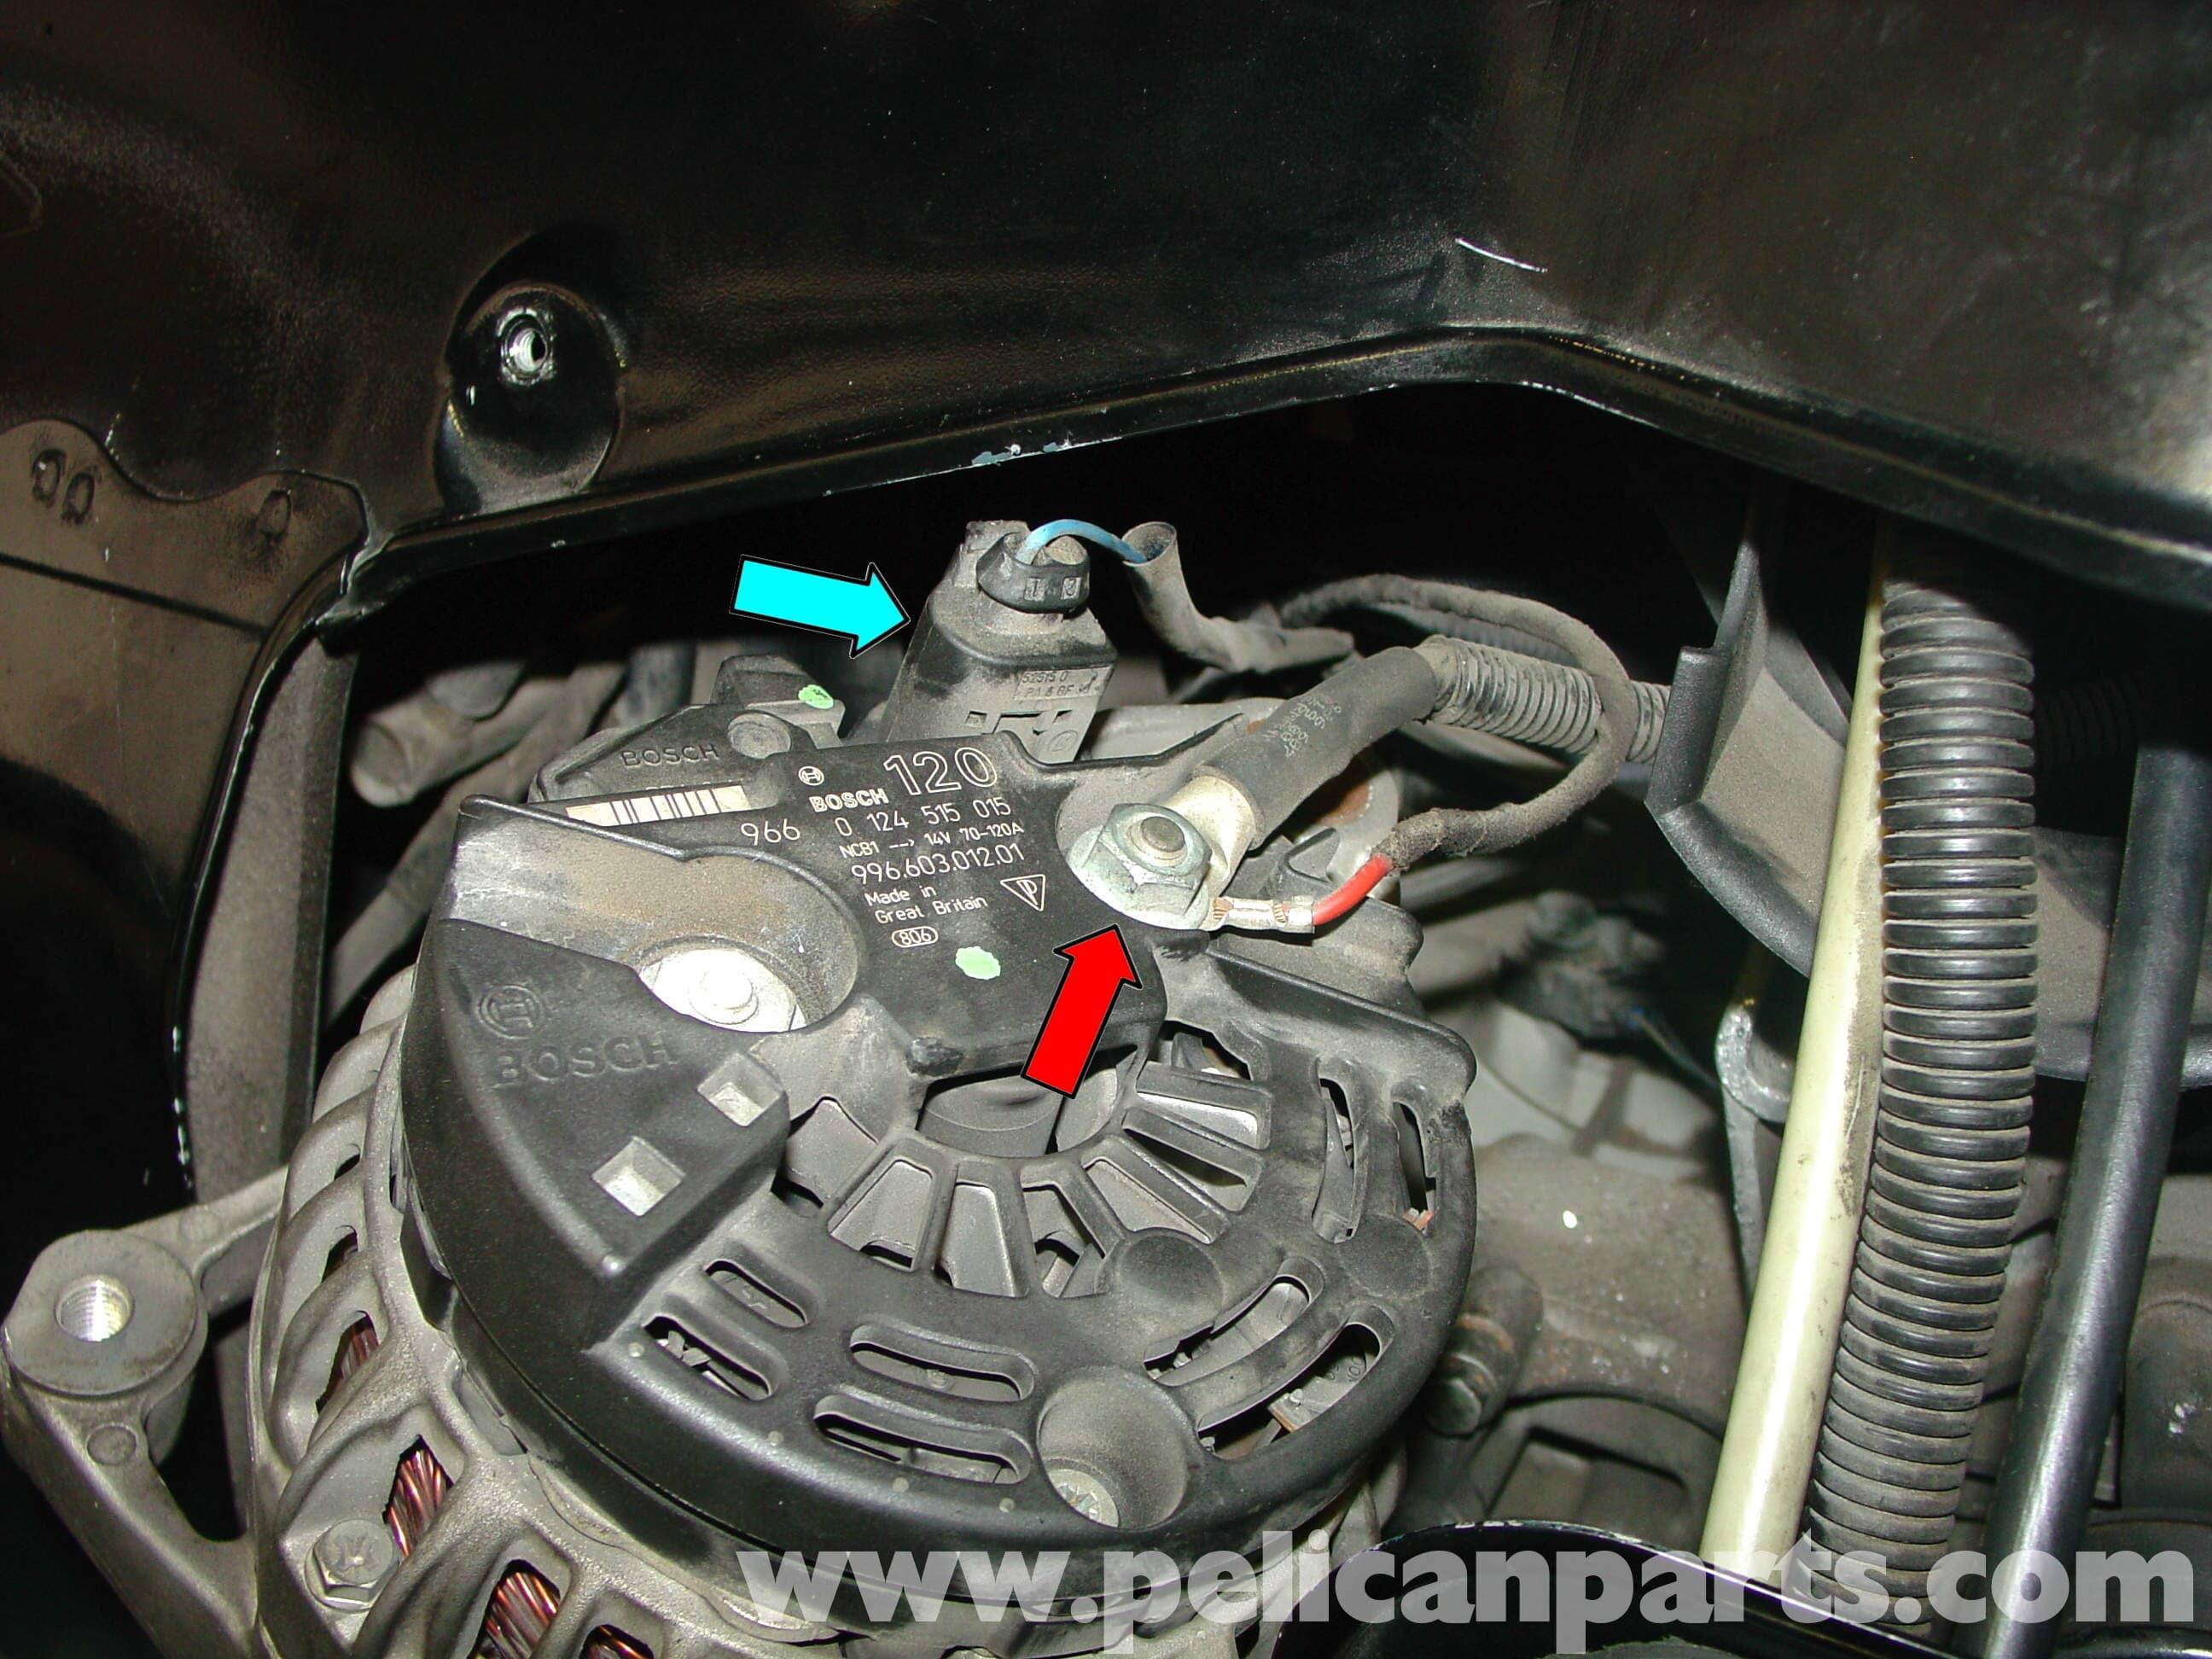 Porsche Boxster Alternator Replacement - 986    987  1997-08